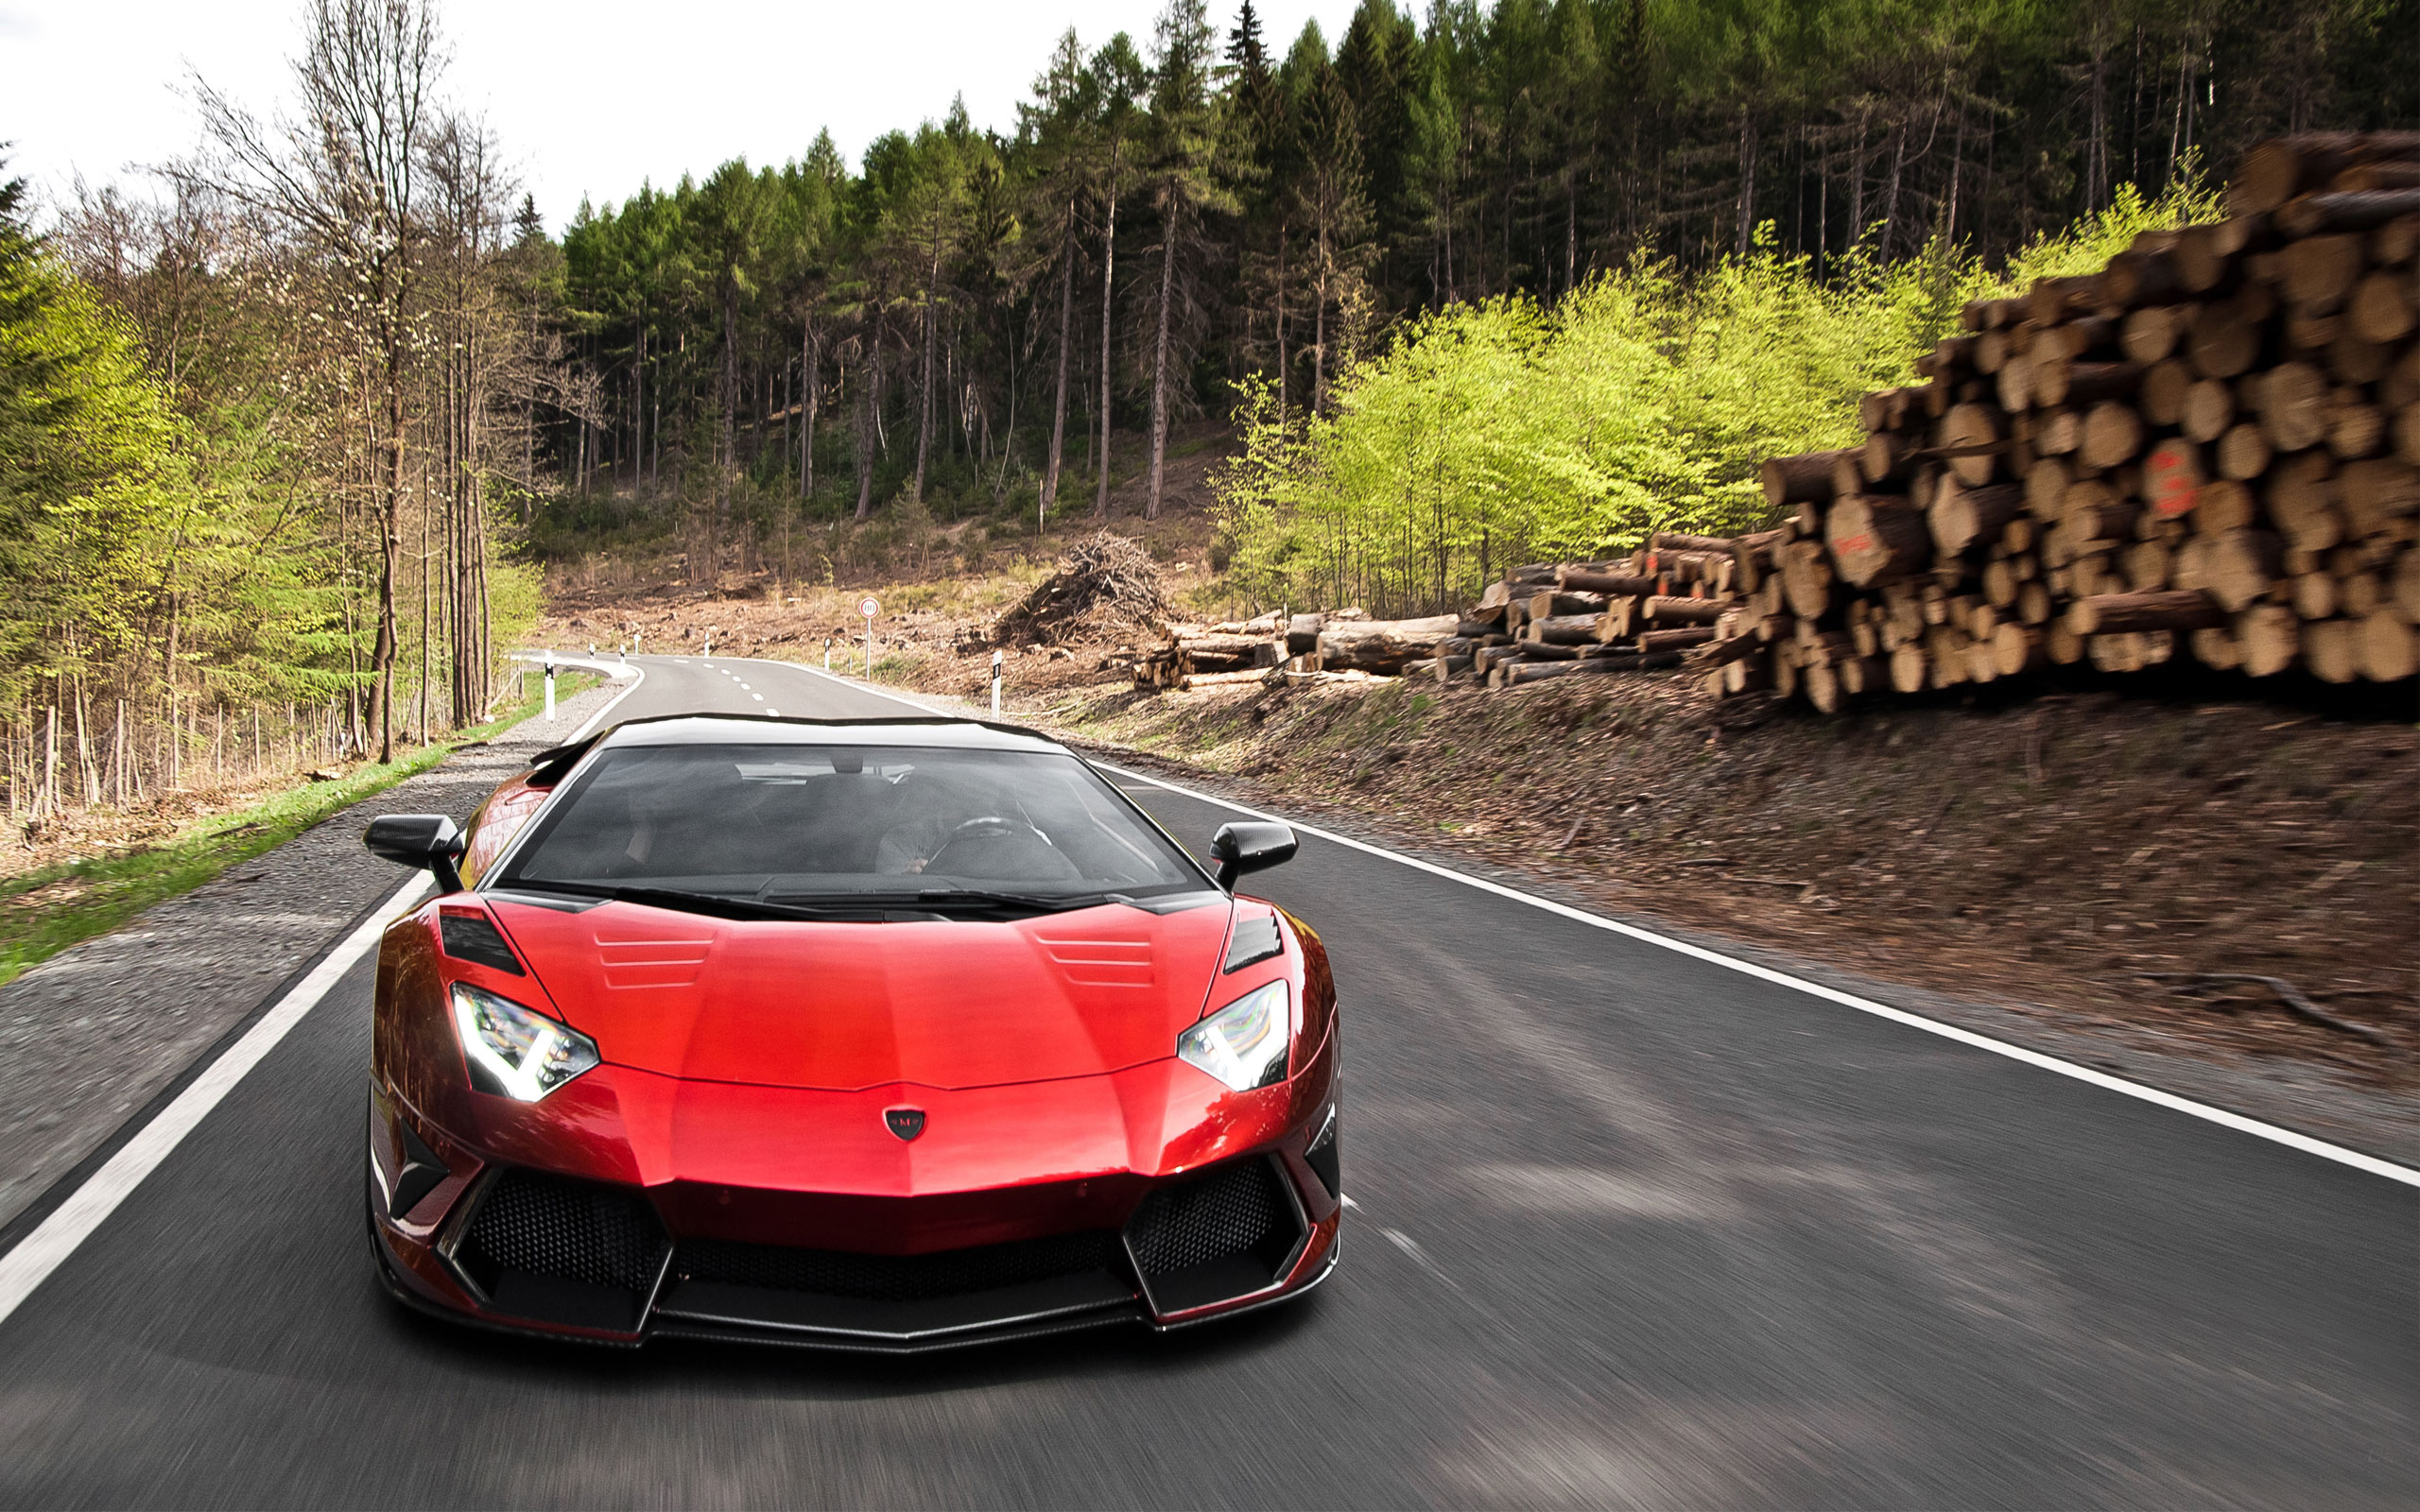 2012 Lamborghini Aventador Mansory Wallpaper HD Car Wallpapers 2560x1600